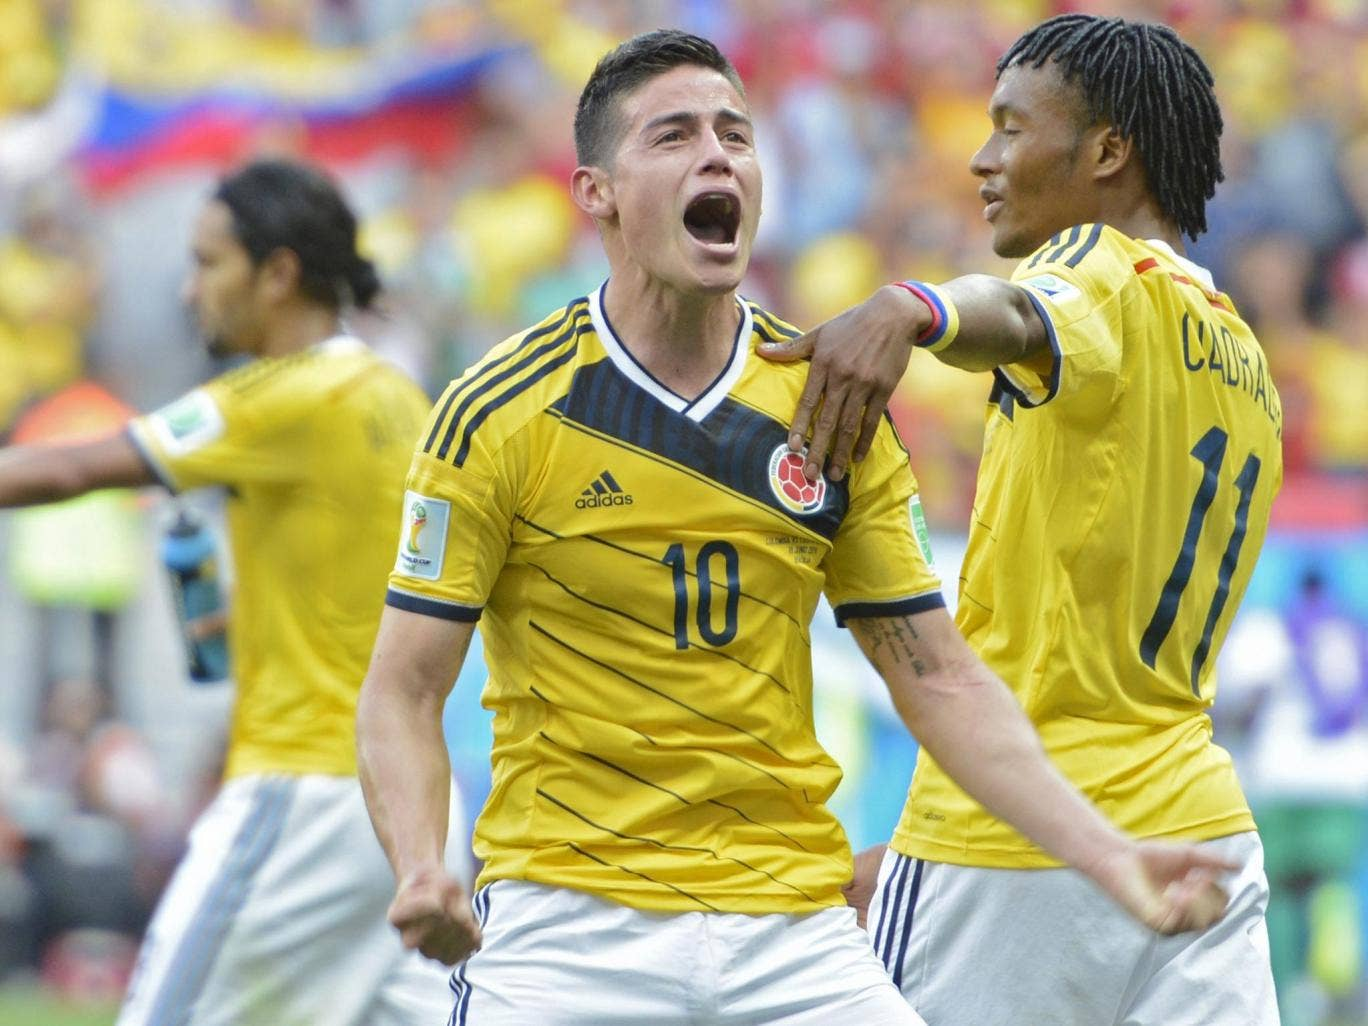 James Rodriguez (centre) celebrates after scoring Colombia's first goal in their 2-1 win over Ivory Coast